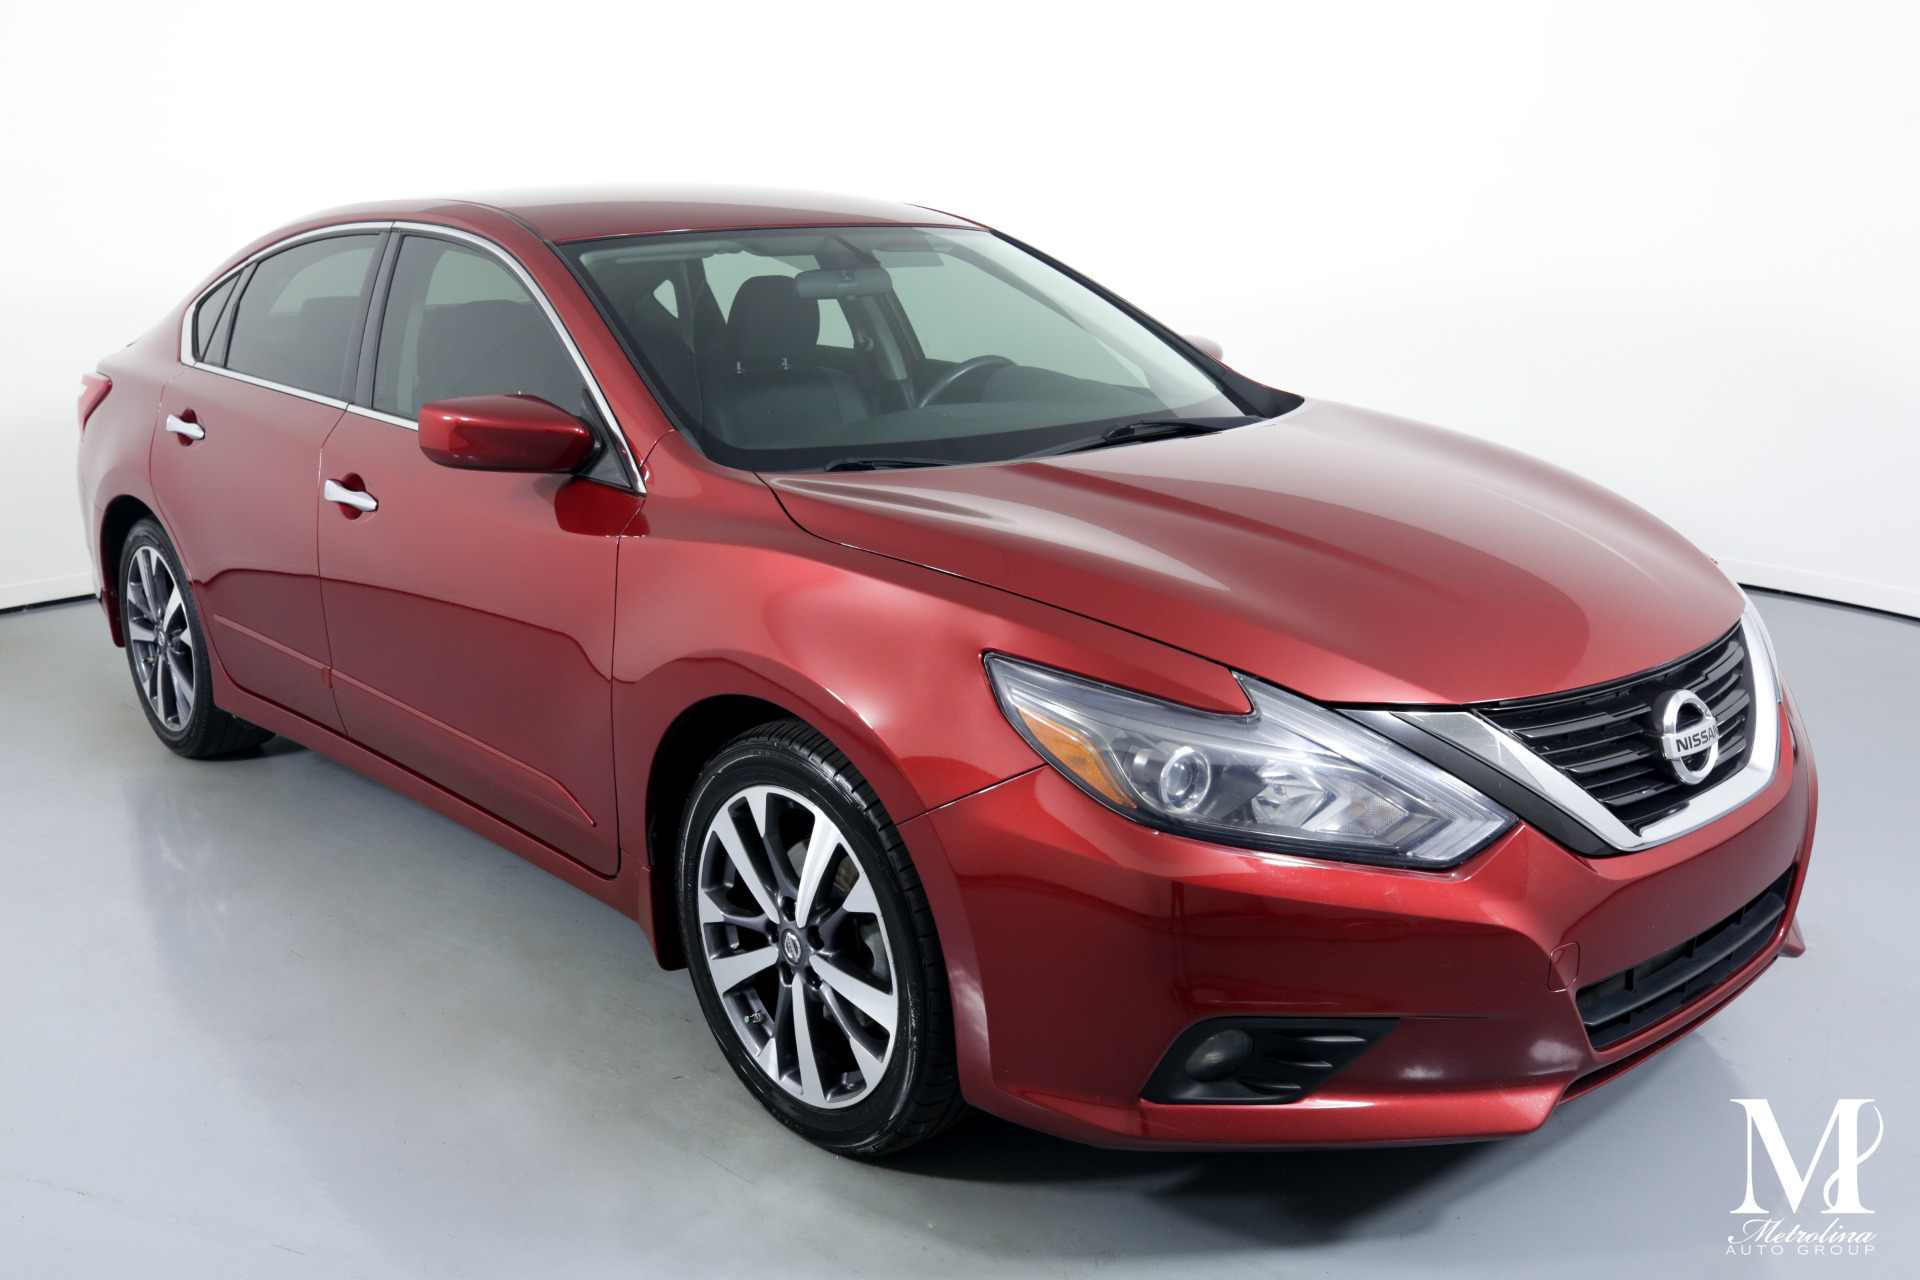 Used 2016 Nissan Altima 2.5 SR for sale $11,996 at Metrolina Auto Group in Charlotte NC 28217 - 2